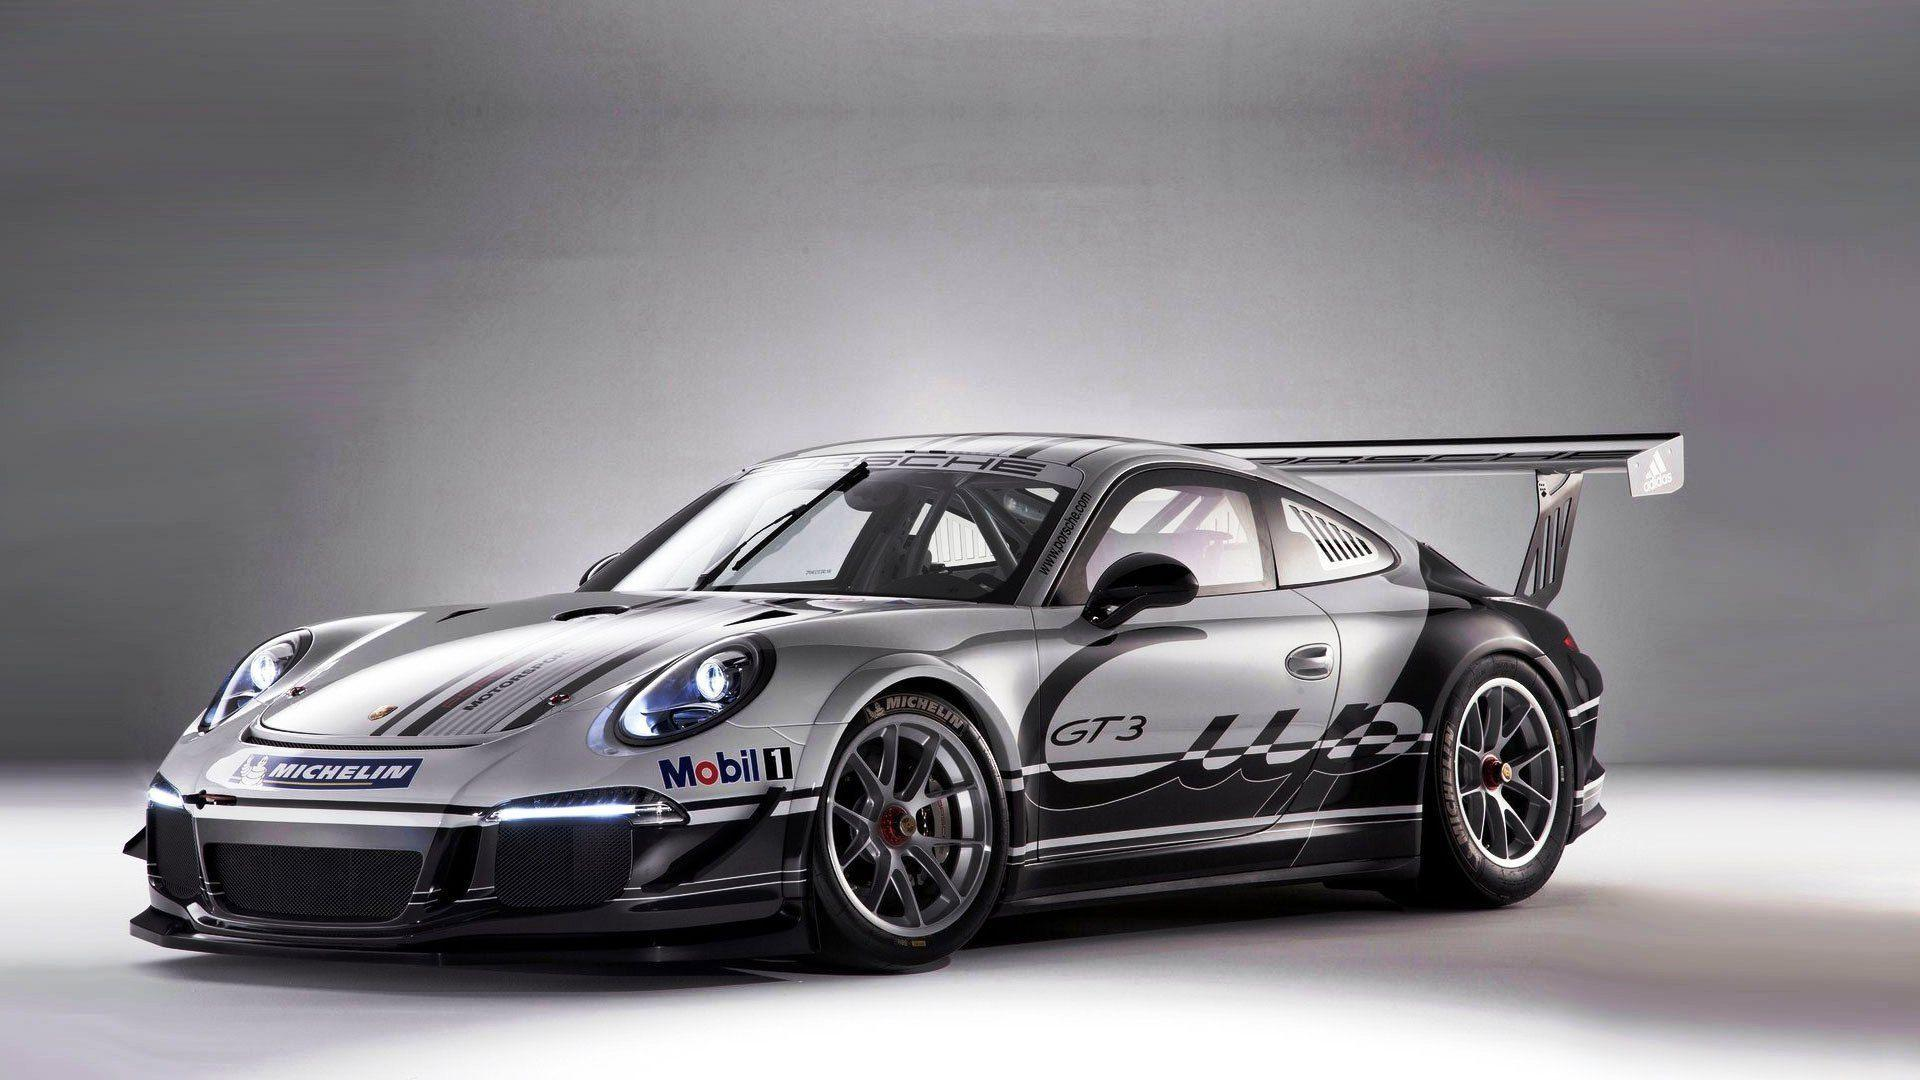 Porsche 911 Wallpaper Sport Cars Cars Wallpapers HD - Wallpapers HD